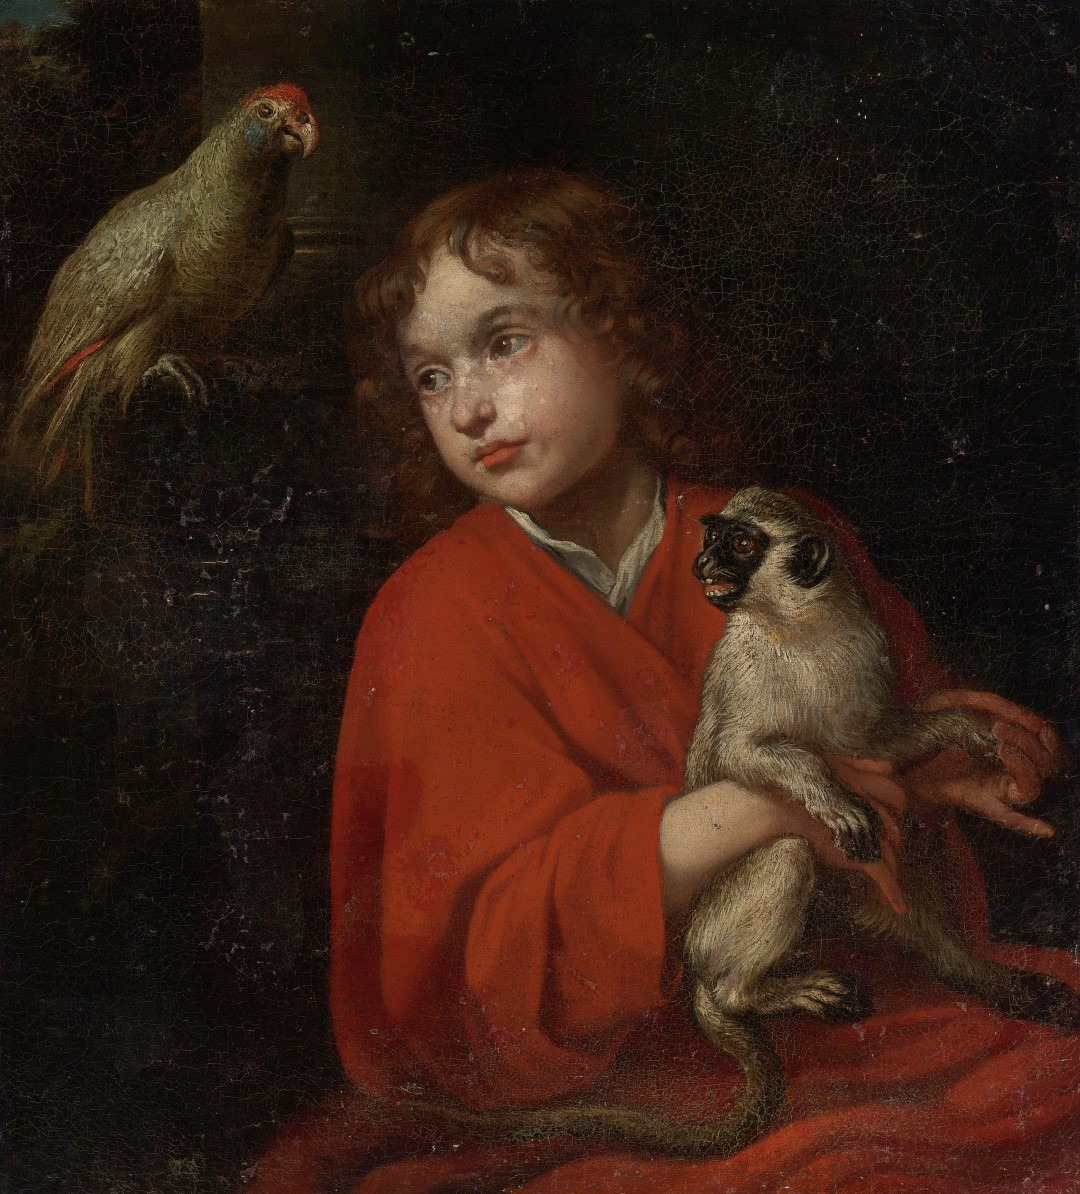 SP_1620-40 Jacob_van_Oost_de_Oudere_-_Parrot_watching_a_Boy_holding_a_Monkey